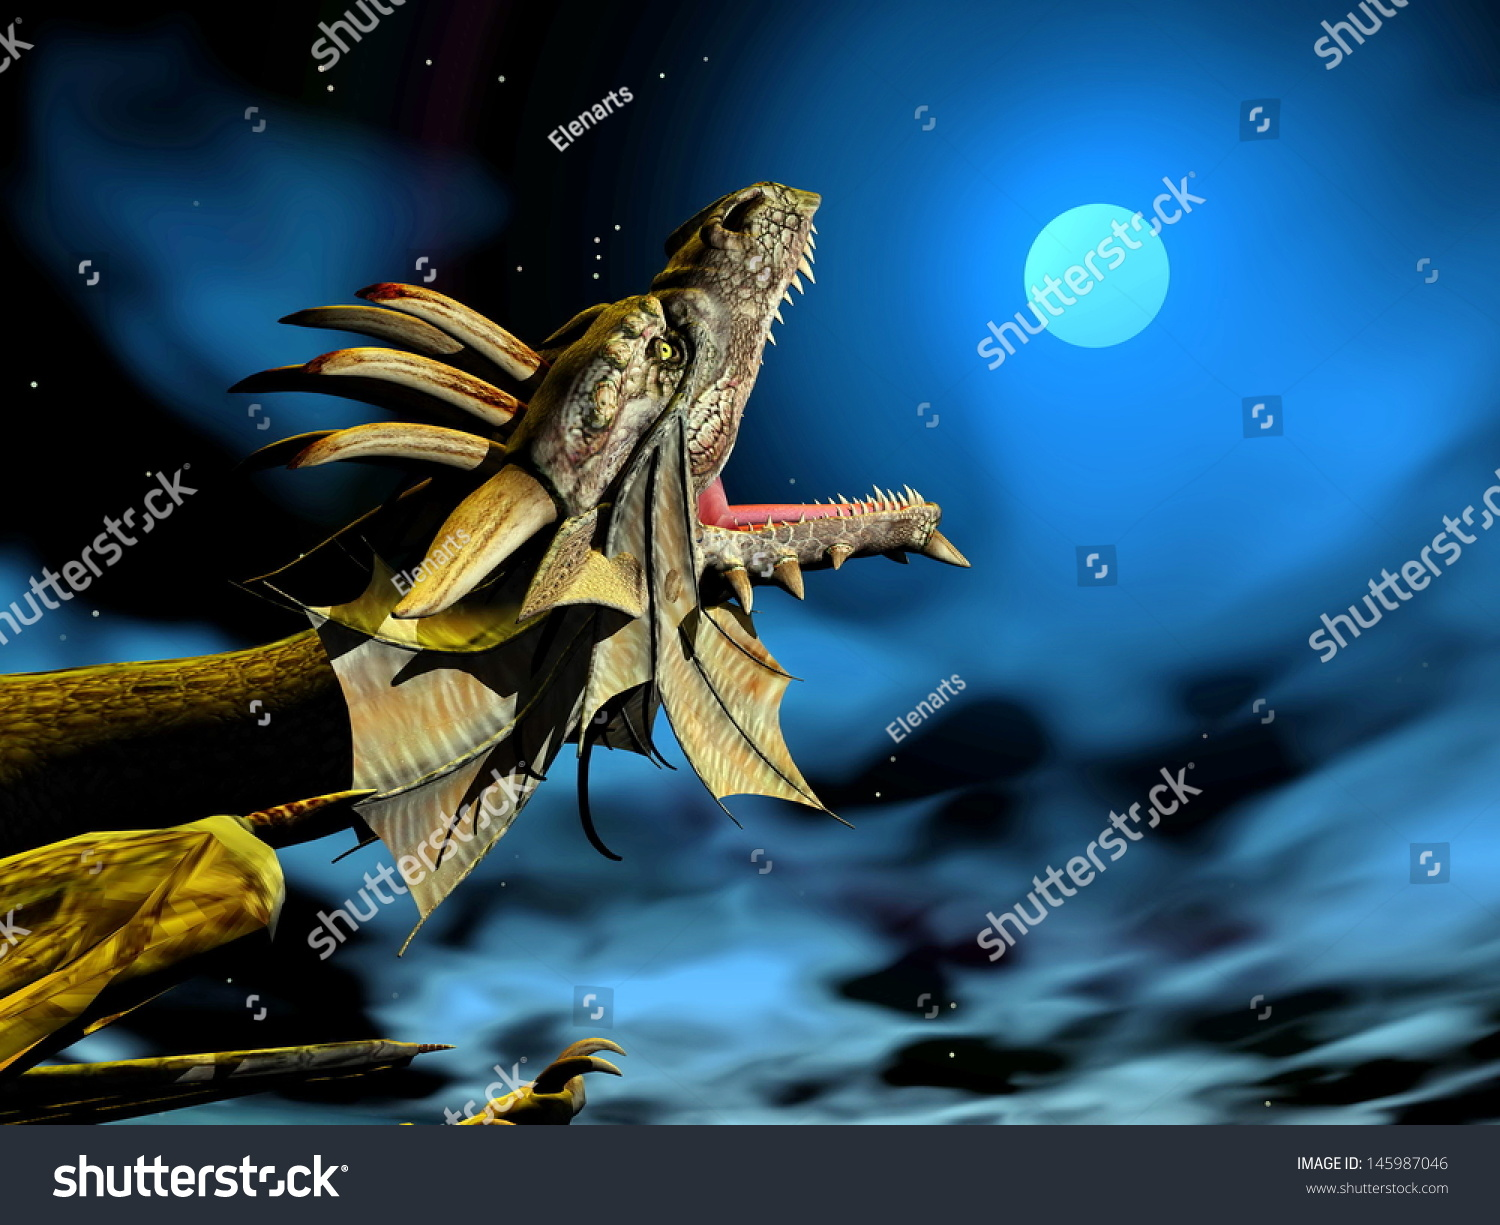 Full Moon Dragon: Head Of Dragon Mouth Wide Open At Full Moon By Night Stock